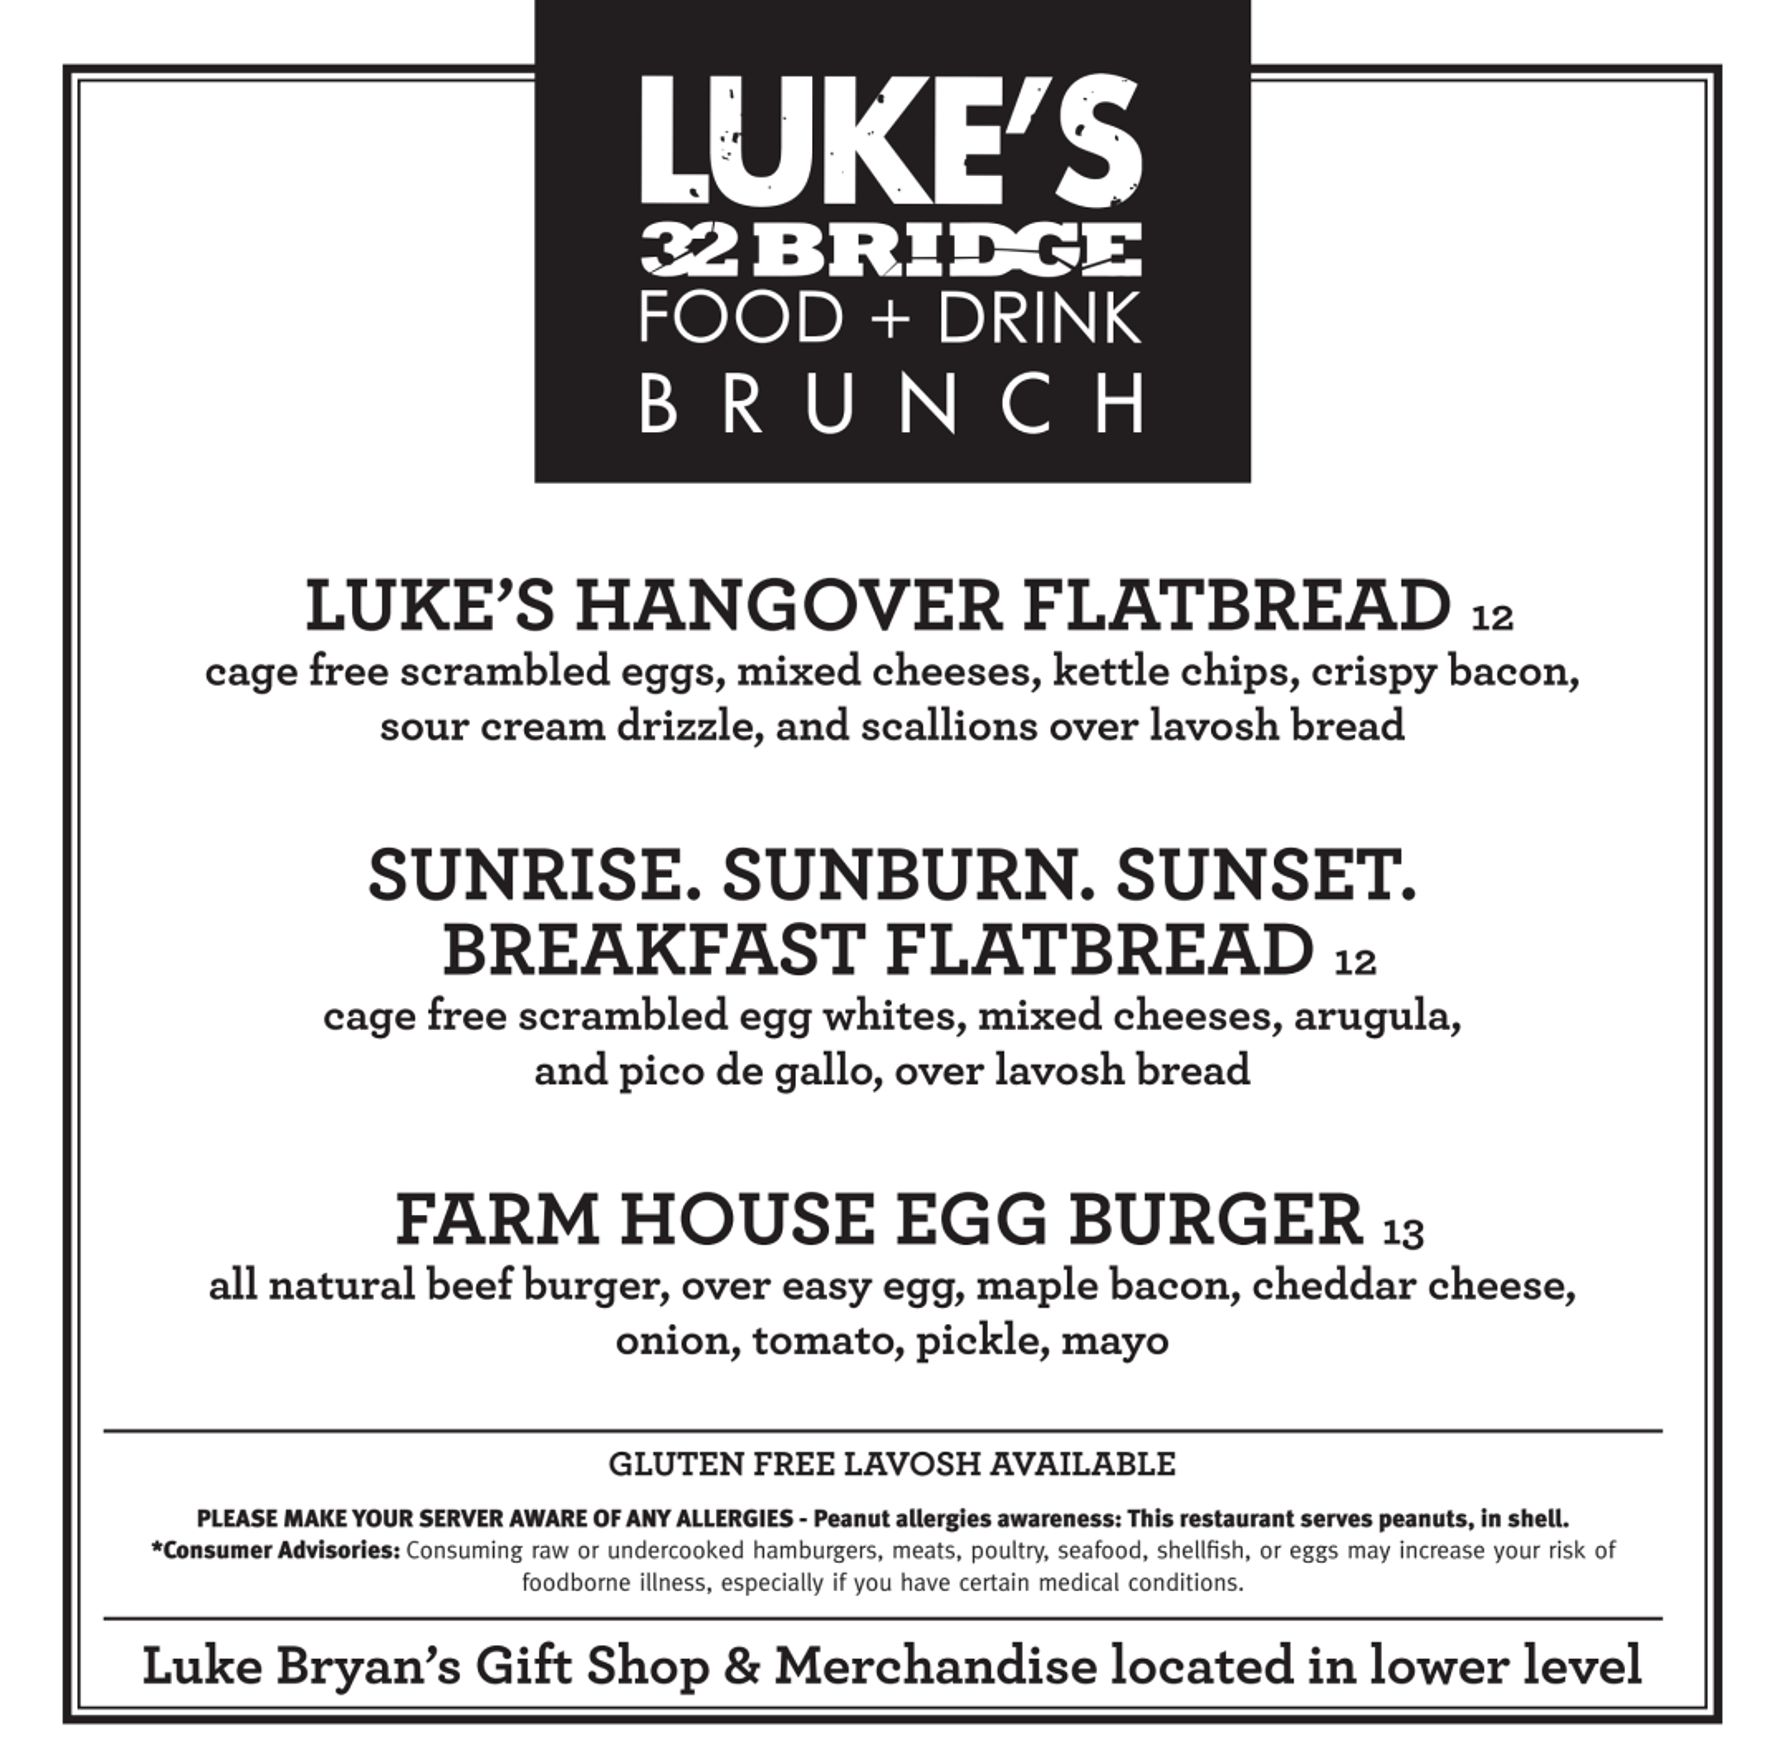 Luke's Brunch